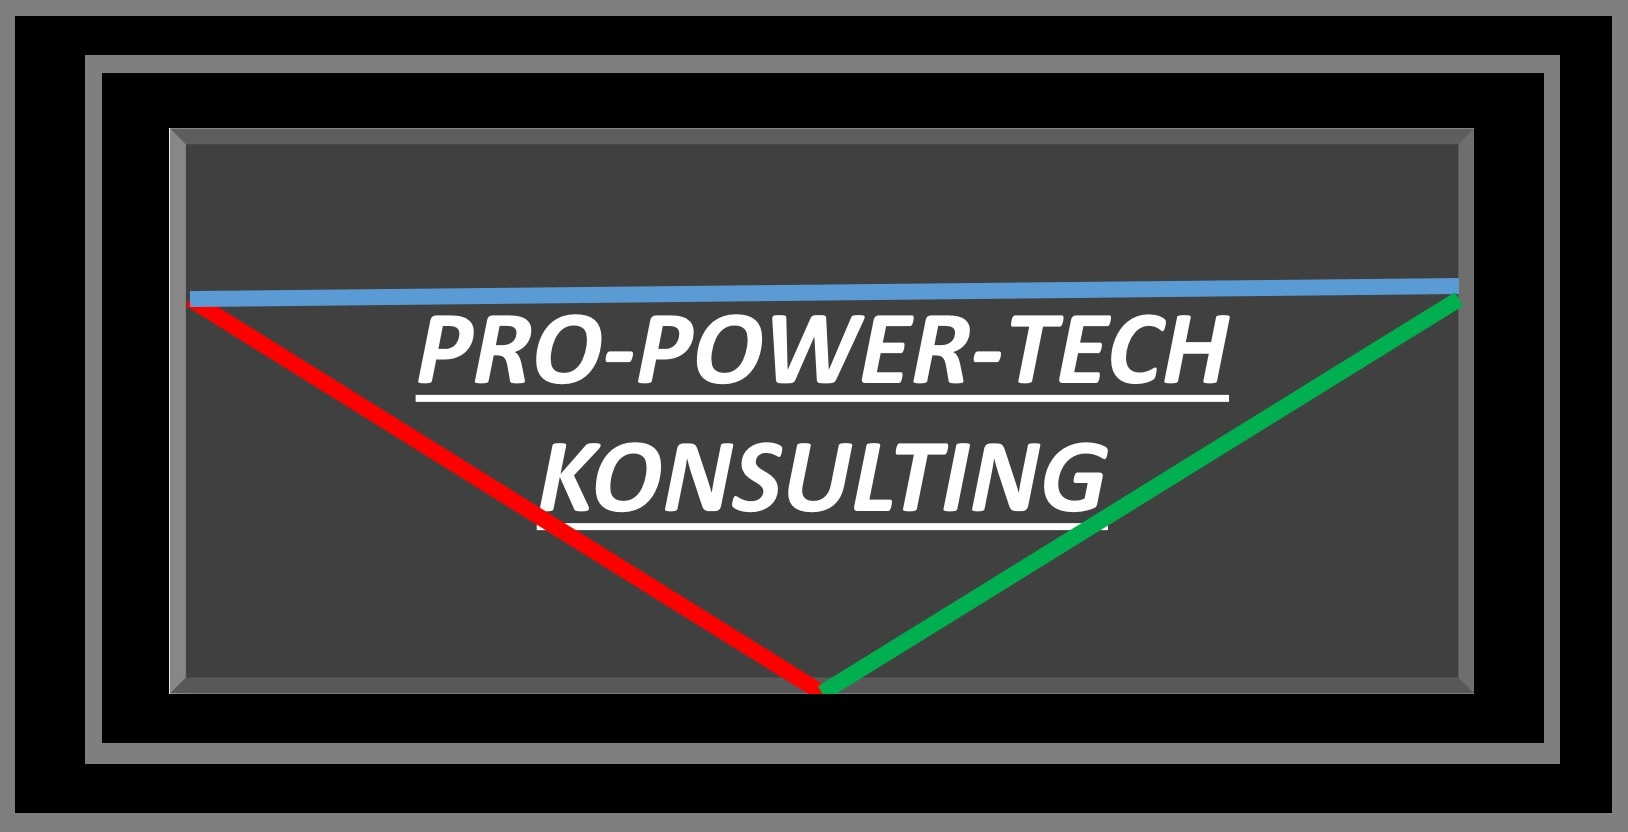 PRO-POWER-TECH Konsulting